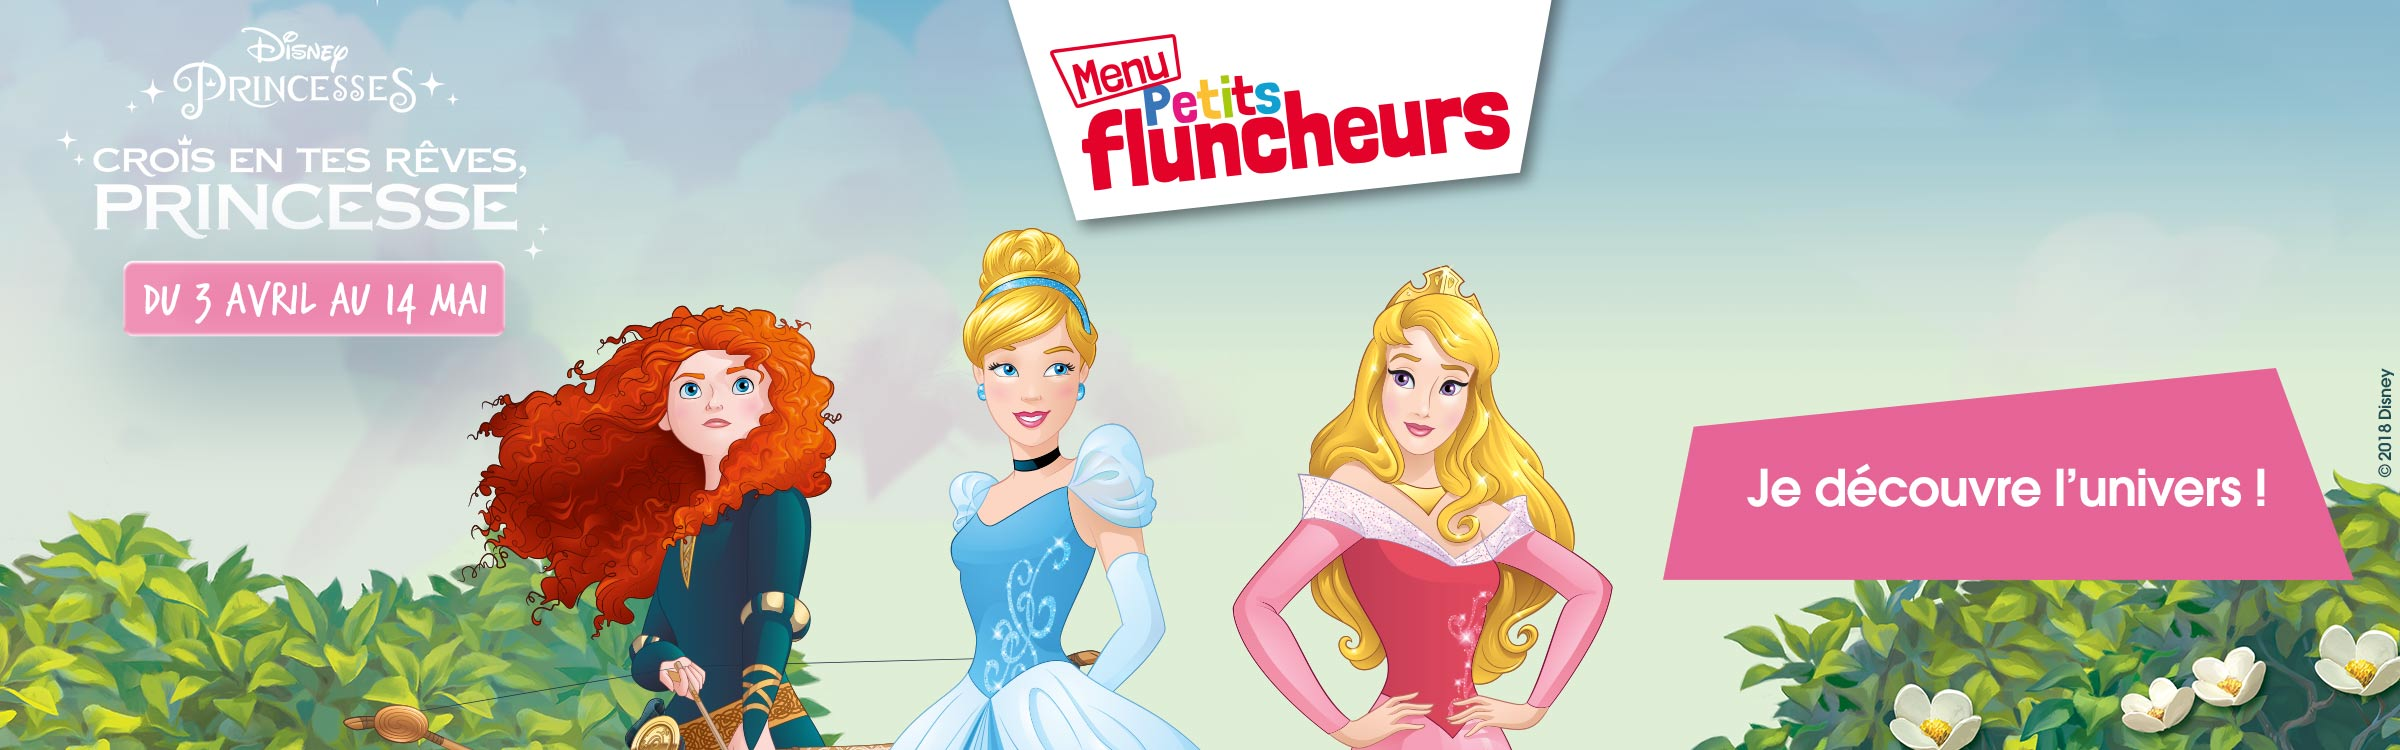 princesses menu petits fluncheurs